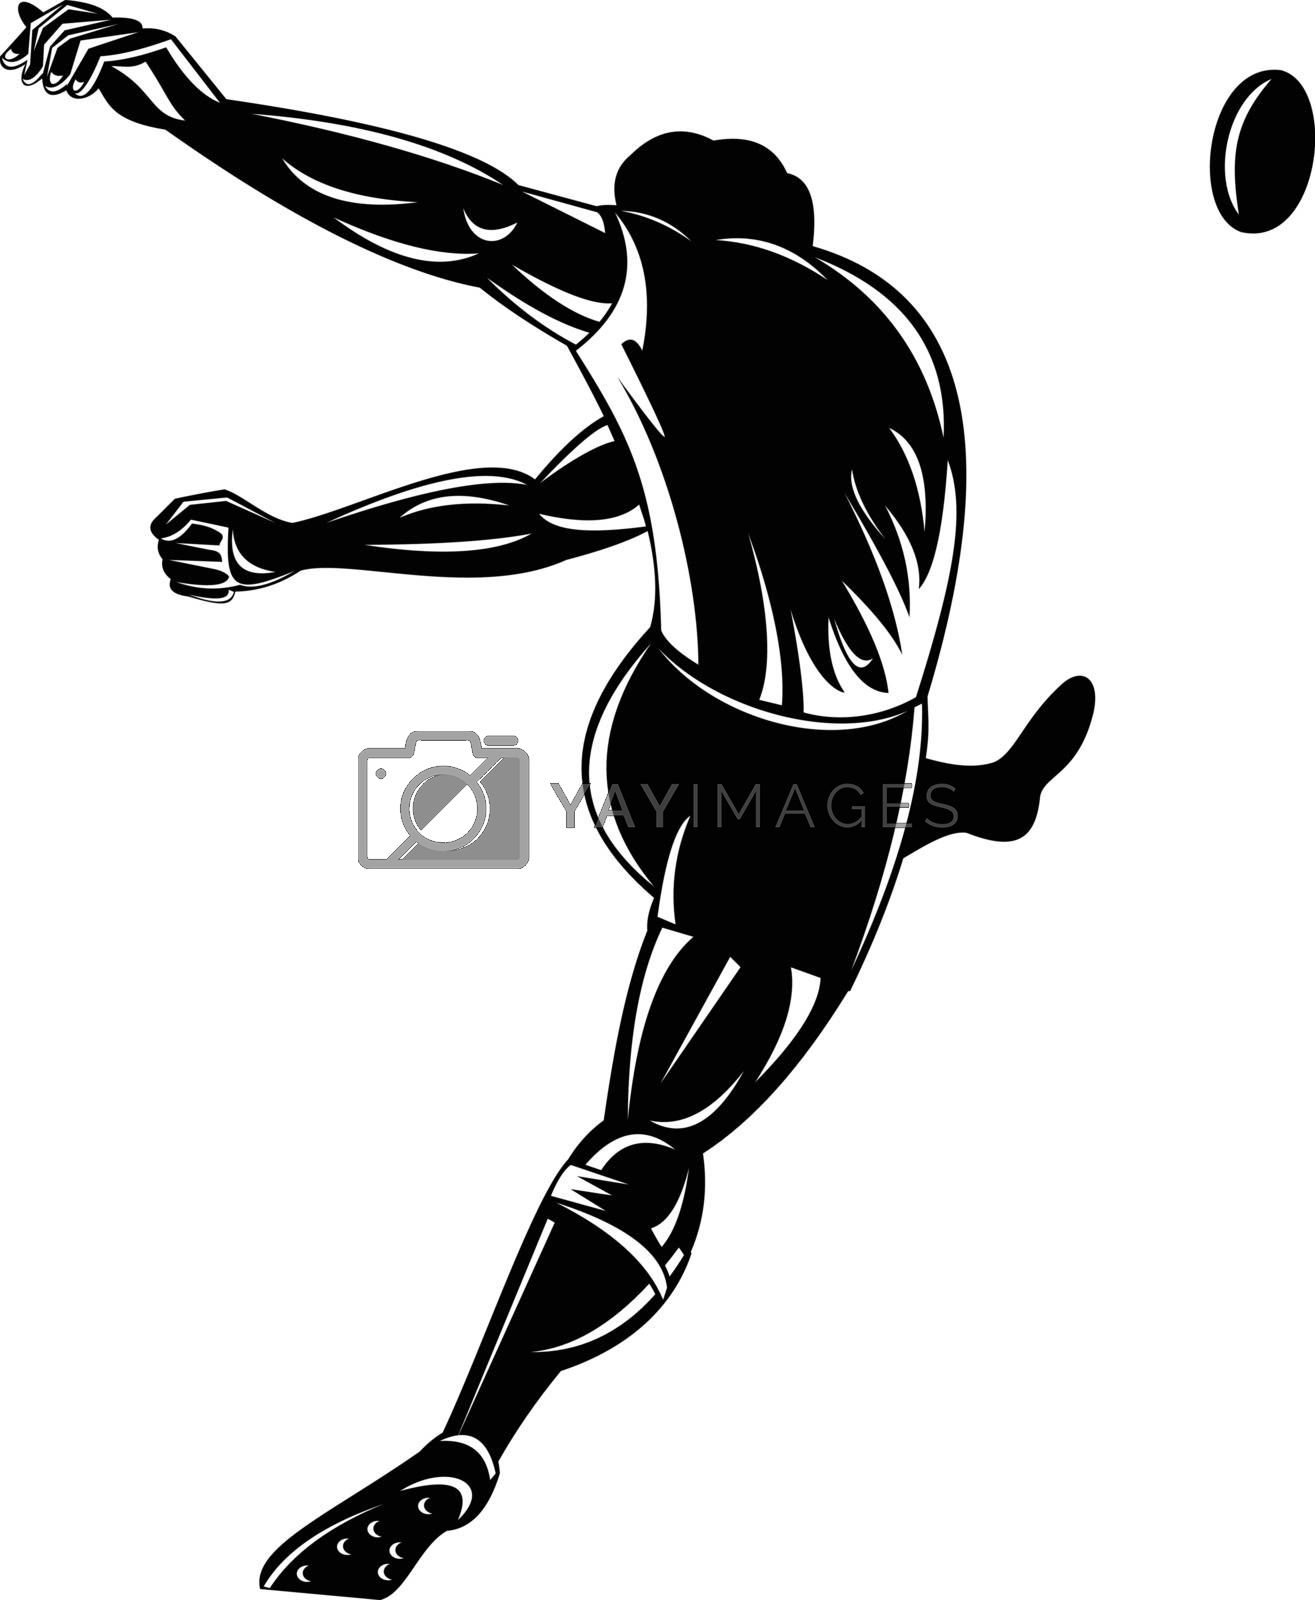 Retro woodcut style illustration of a rugby player or kicker kicking the ball viewed from rear or back  on isolated background done in black and white.